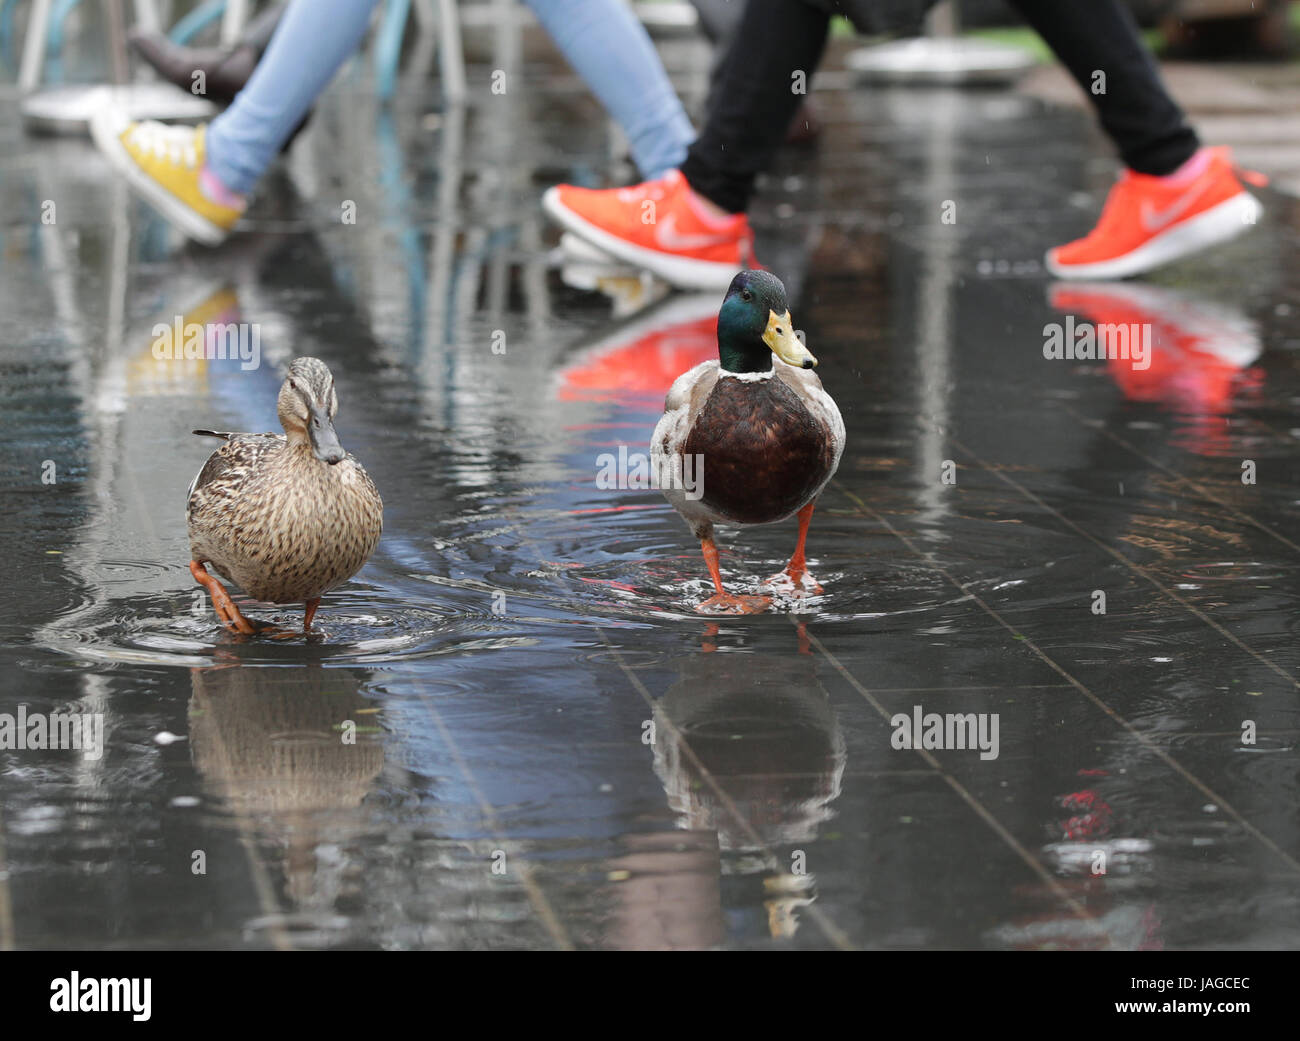 A pair of ducks sit in a pool of water along the Southbank, in London, following heavy rainfall. - Stock Image